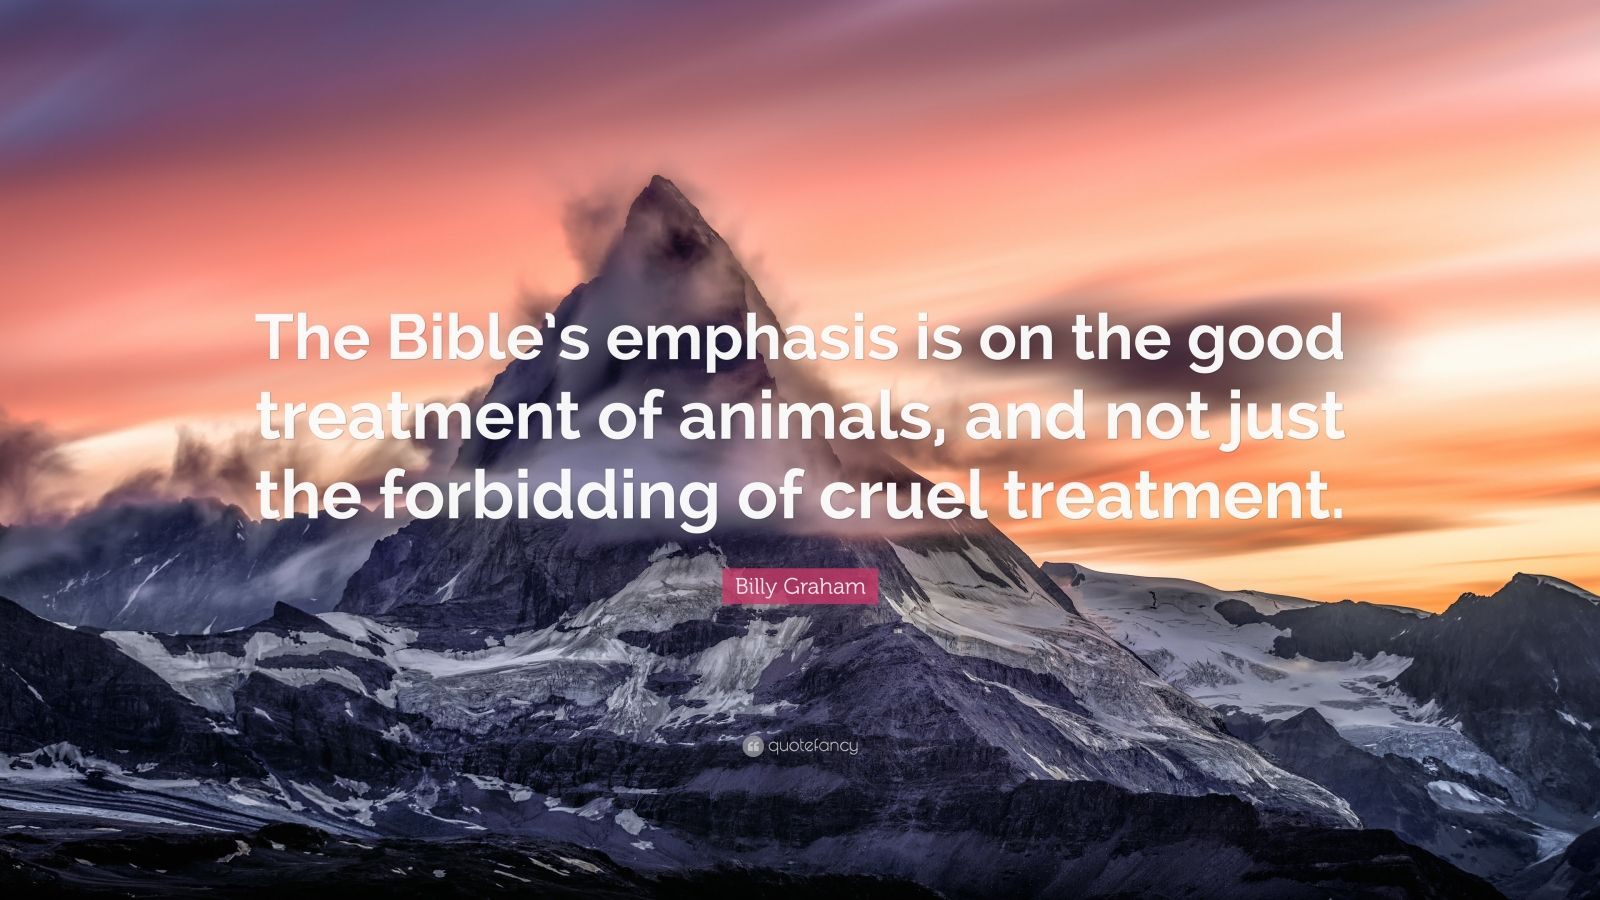 """Billy Graham Quote: """"The Bible's emphasis is on the good treatment of animals, and not just the forbidding of cruel treatment."""""""